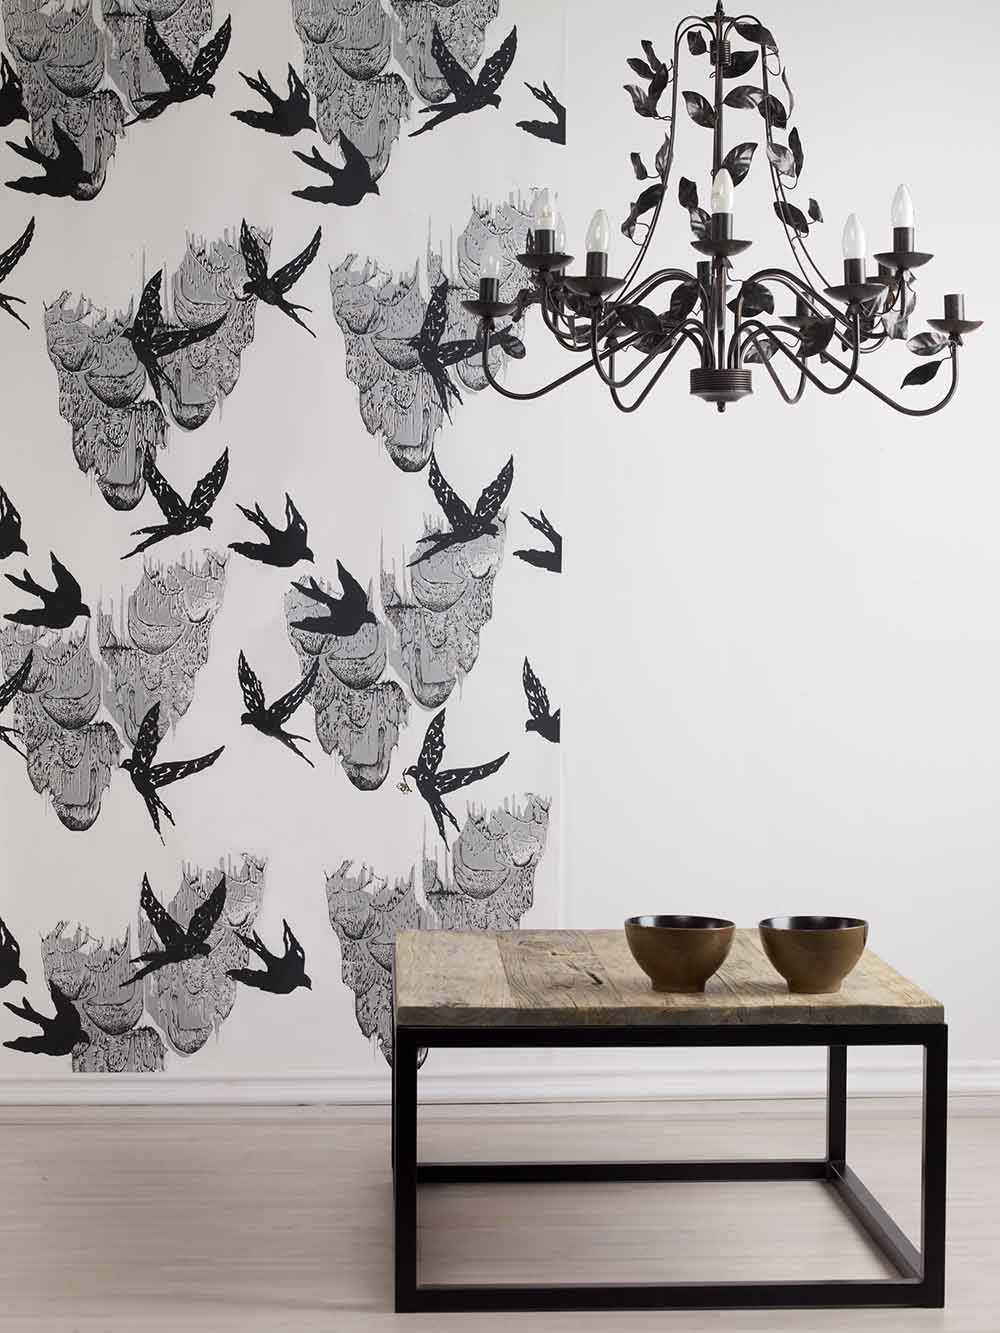 Swallows / Wallpapers by Addicted to patterns studio